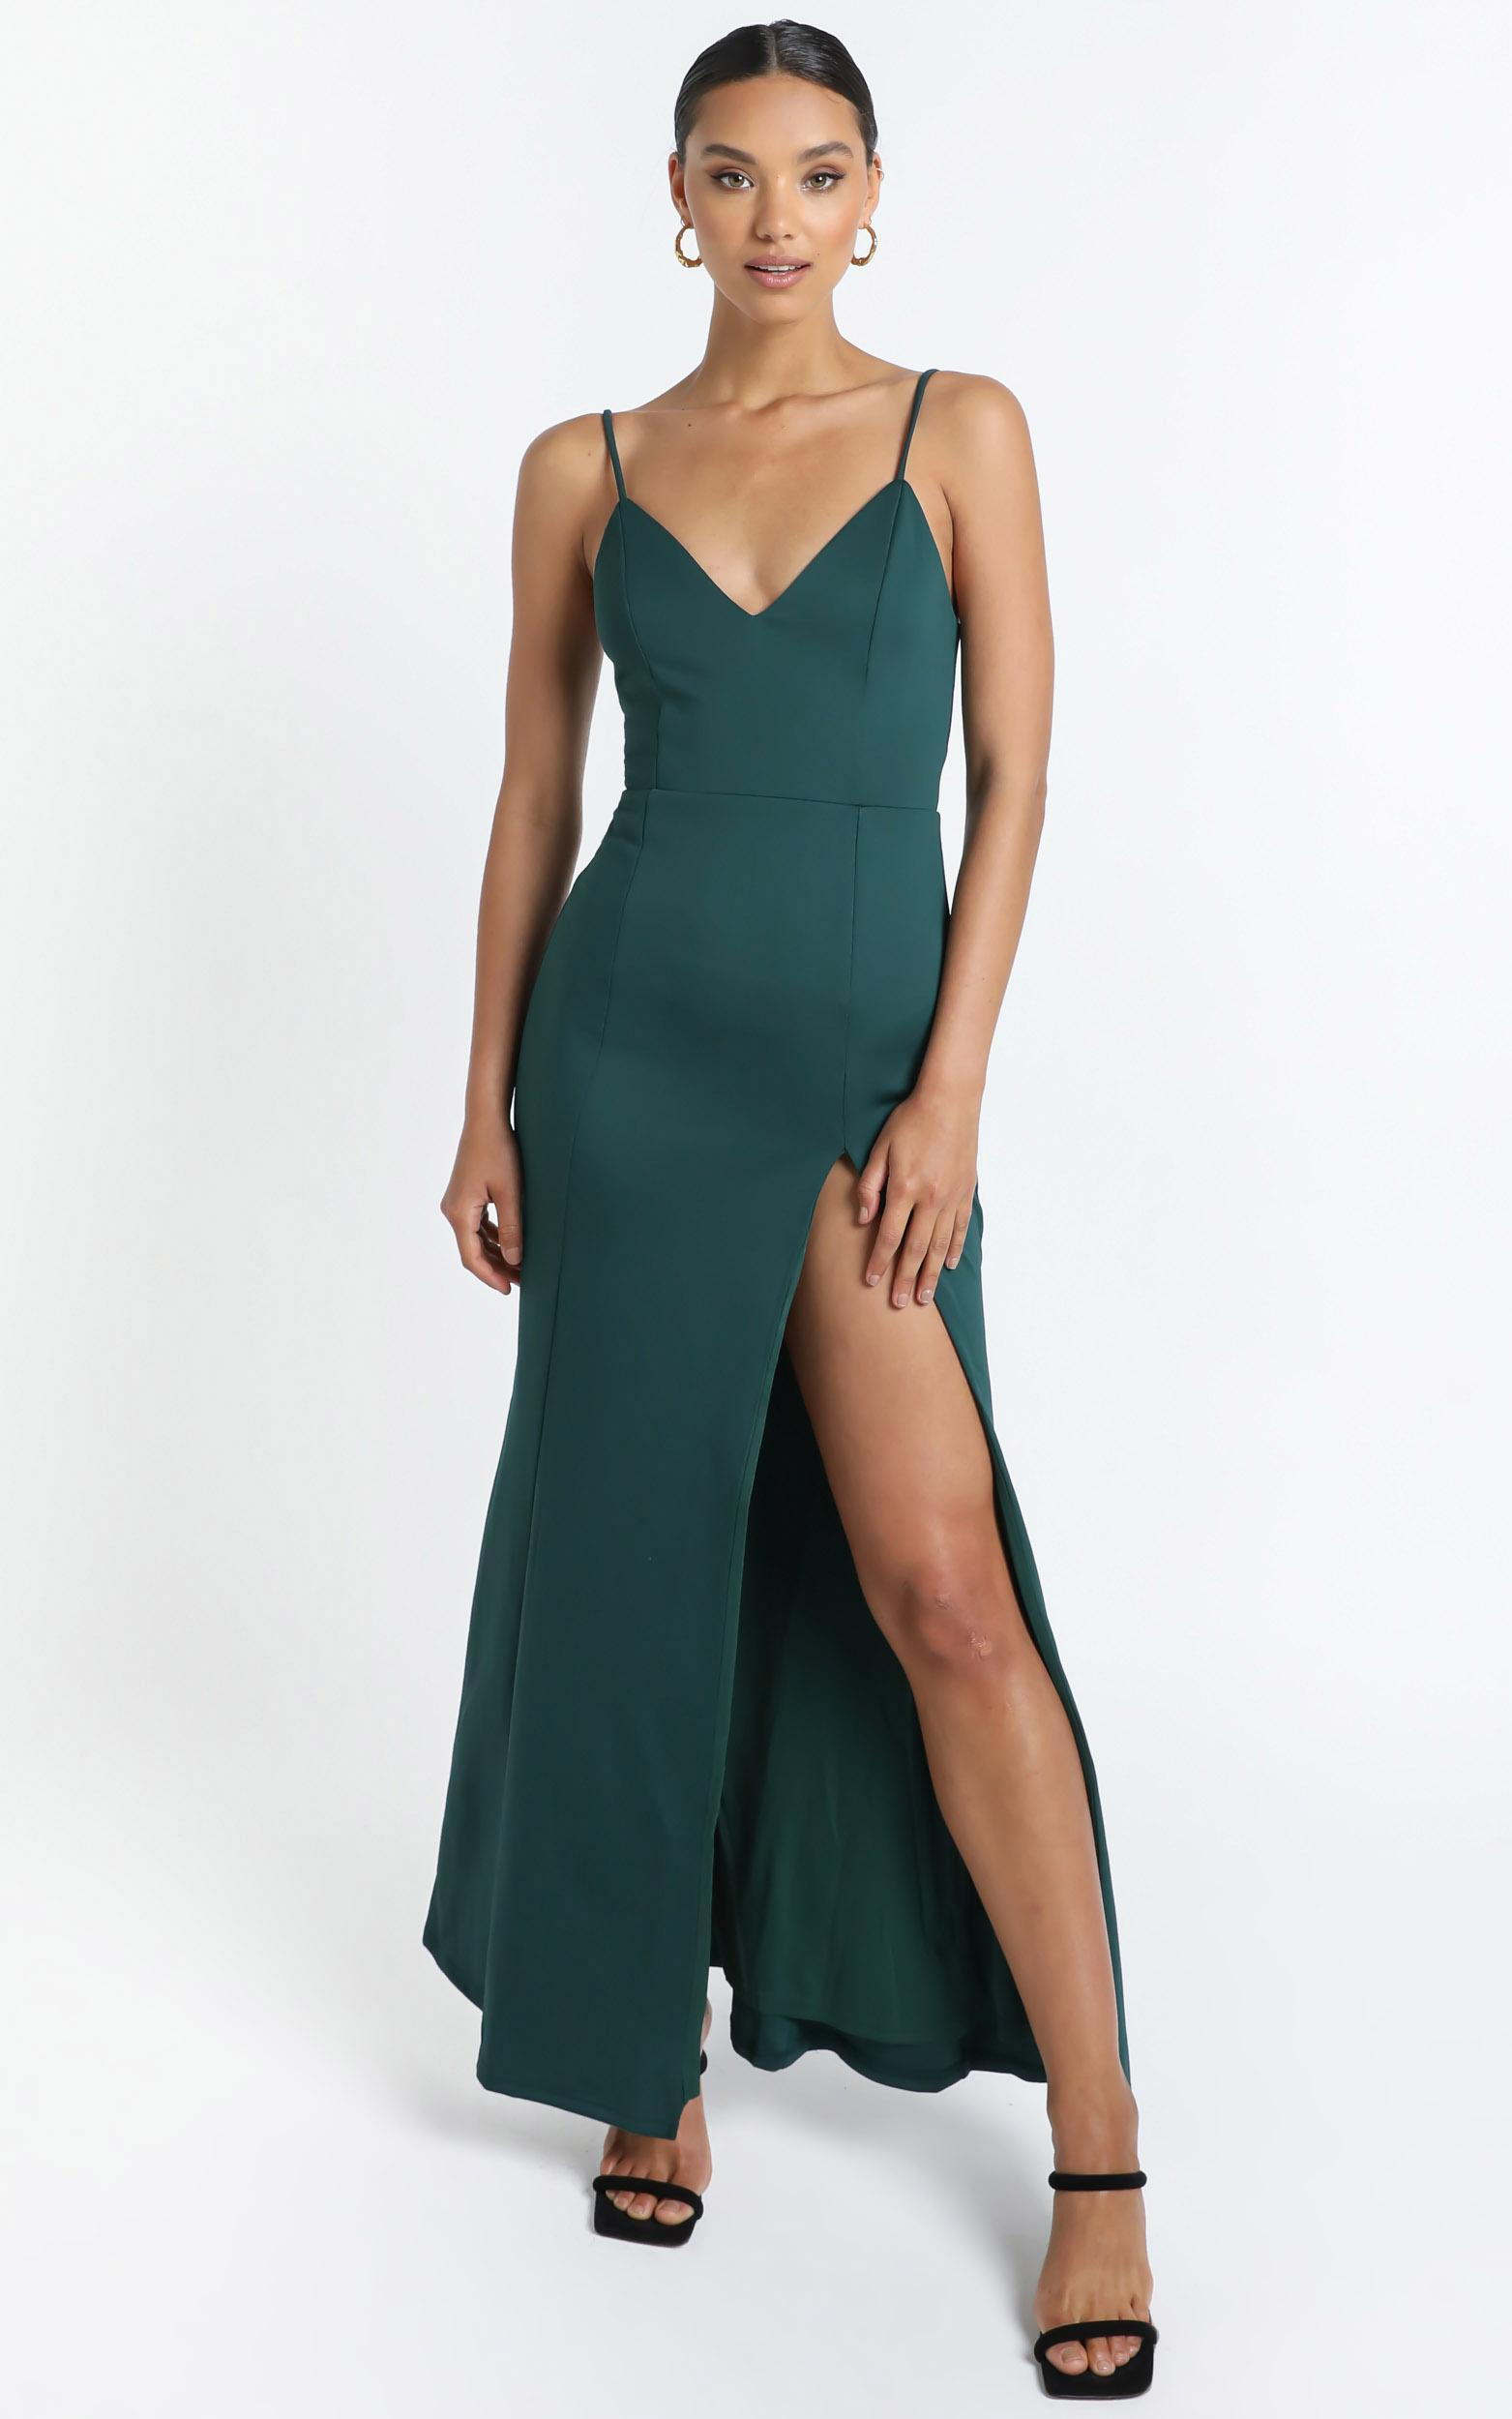 Dare To Dream Maxi Dress in emerald - 20 (XXXXL), Green, hi-res image number null